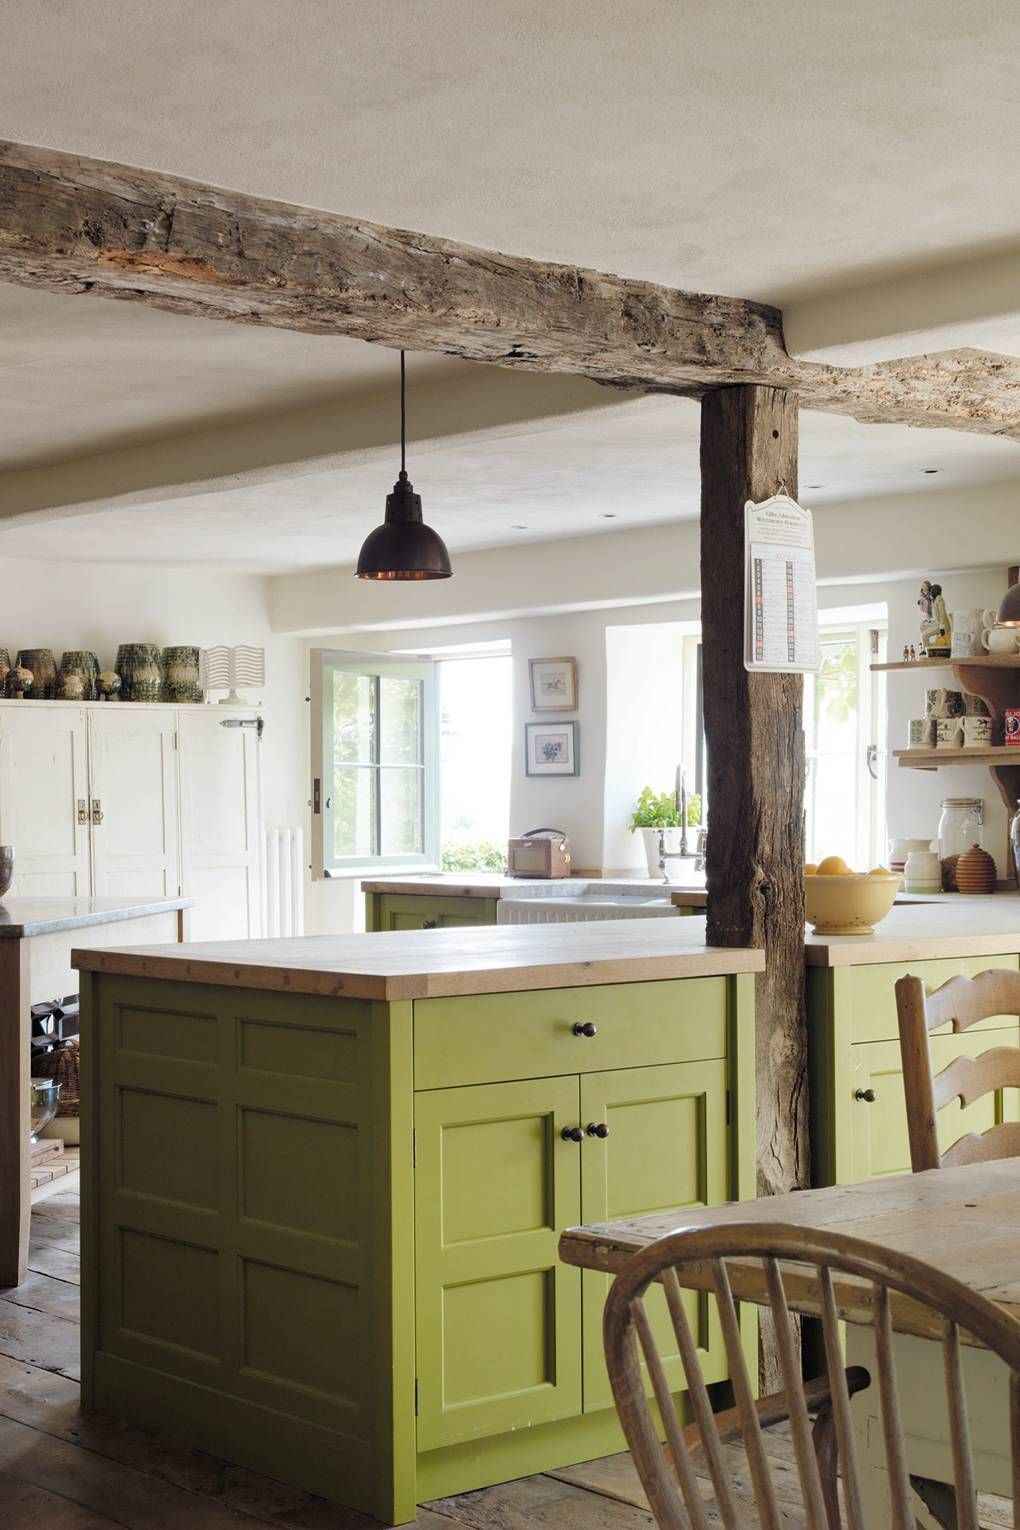 Vogue archivist and editor Robin Muir's country home